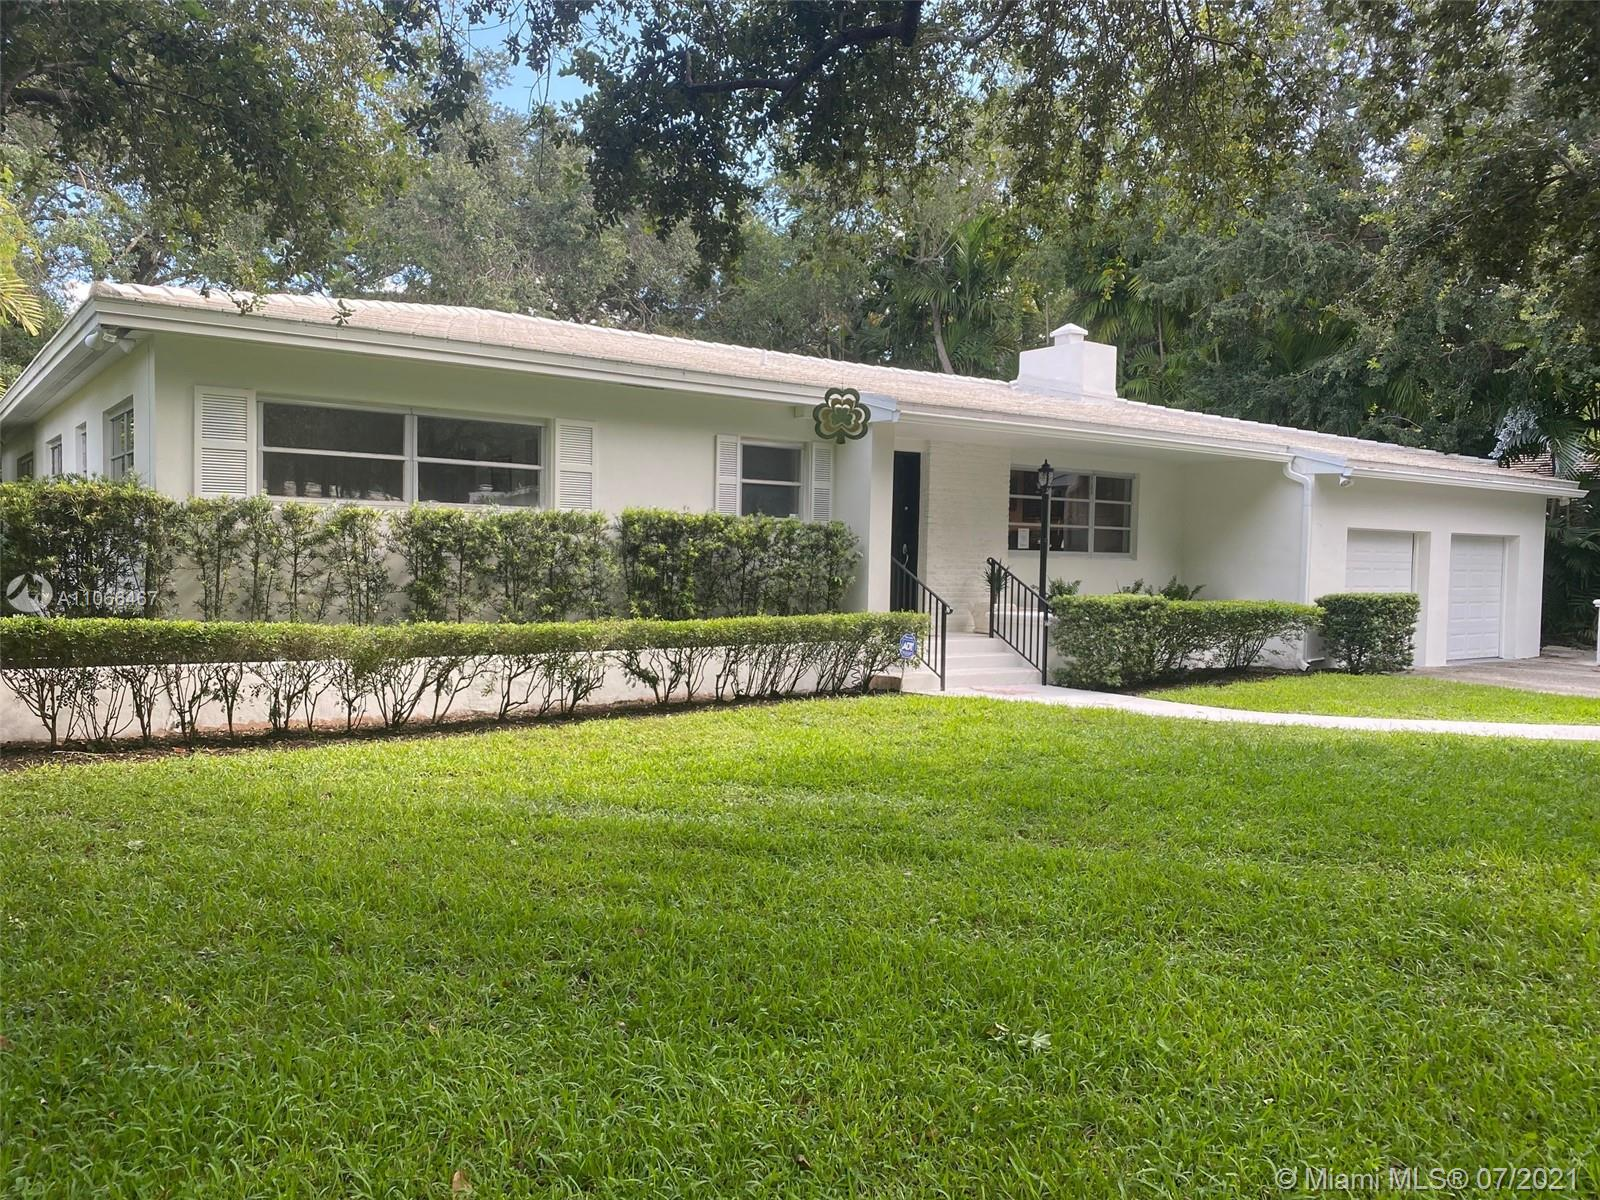 Incredible rare opportunity for this mid-century home located in the highly sought after Platinum Triangle in centrally located South Coral Gables surrounded by multi-million dollar homes.  This exquisite property sits on a 13,770 sq ft lot with a large backyard, and lush mature landscape with tropical trees on an oak tree canopied, quiet street.  Charming integration of its indoor and outdoor elements, and expansive open spaces.  Current  floor plan entails spacious rooms, Miami-Dade hardwood pine floors, walk-in closets, oversized 2 car garage with lots of storage.  Update, add-on, build up or create your dream home.  Located close to excellent public (Sunset school district) and private schools, and a short distance to great restaurants, hospitals, supermarkets, shops, and much more.